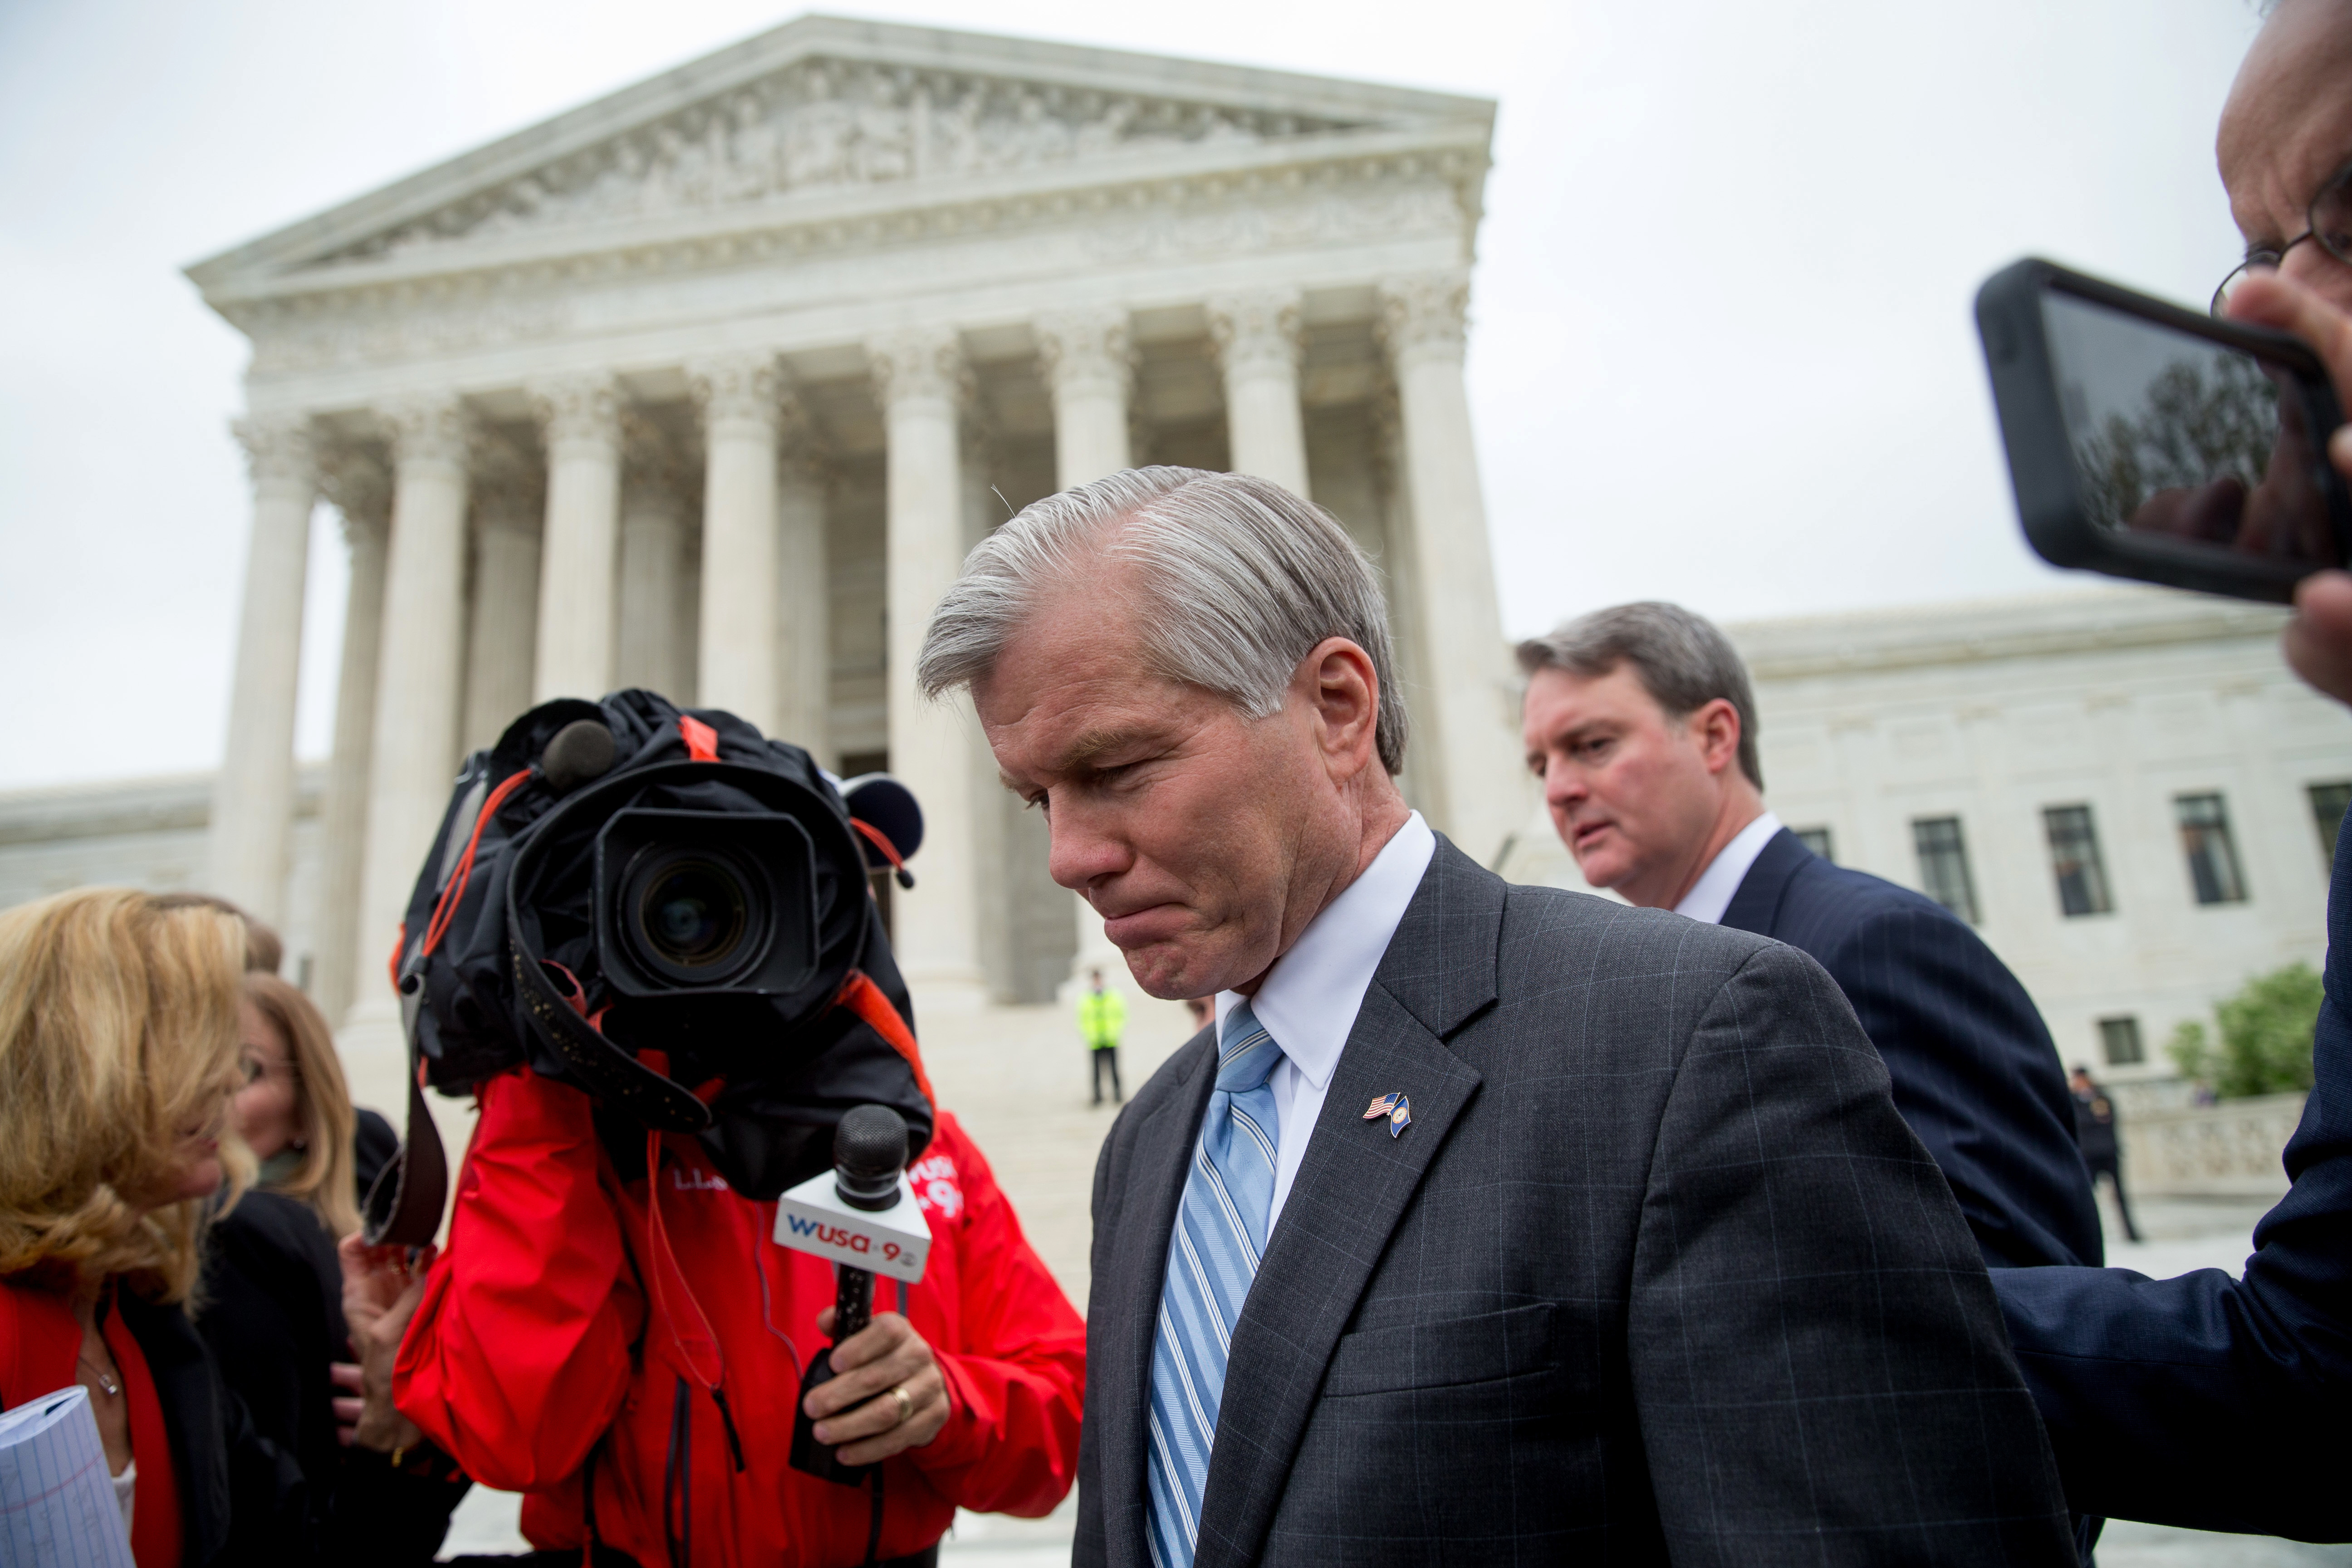 Possible outcomes for ex-governor McDonnell after trip to Supreme Court